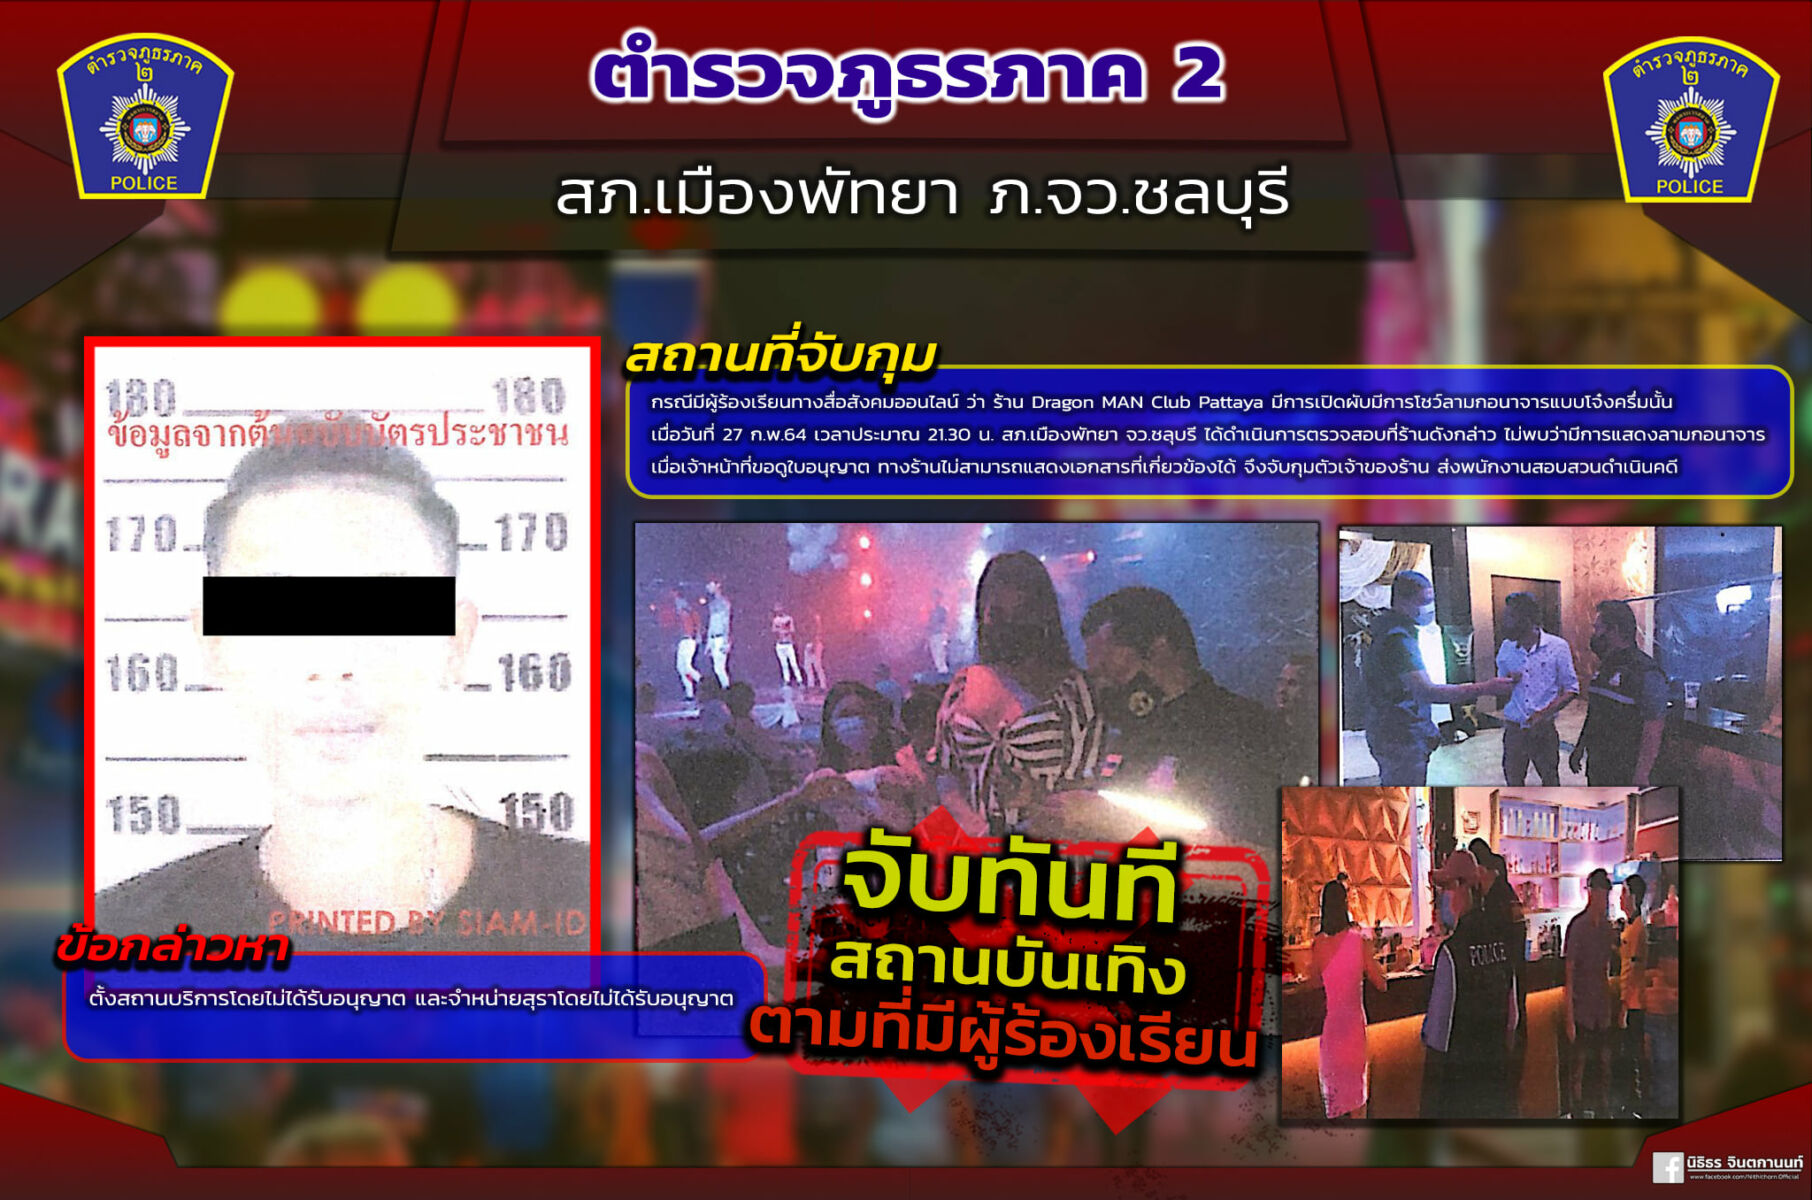 Pattaya police raid nightclub suspected of presenting pornographic shows | The Thaiger